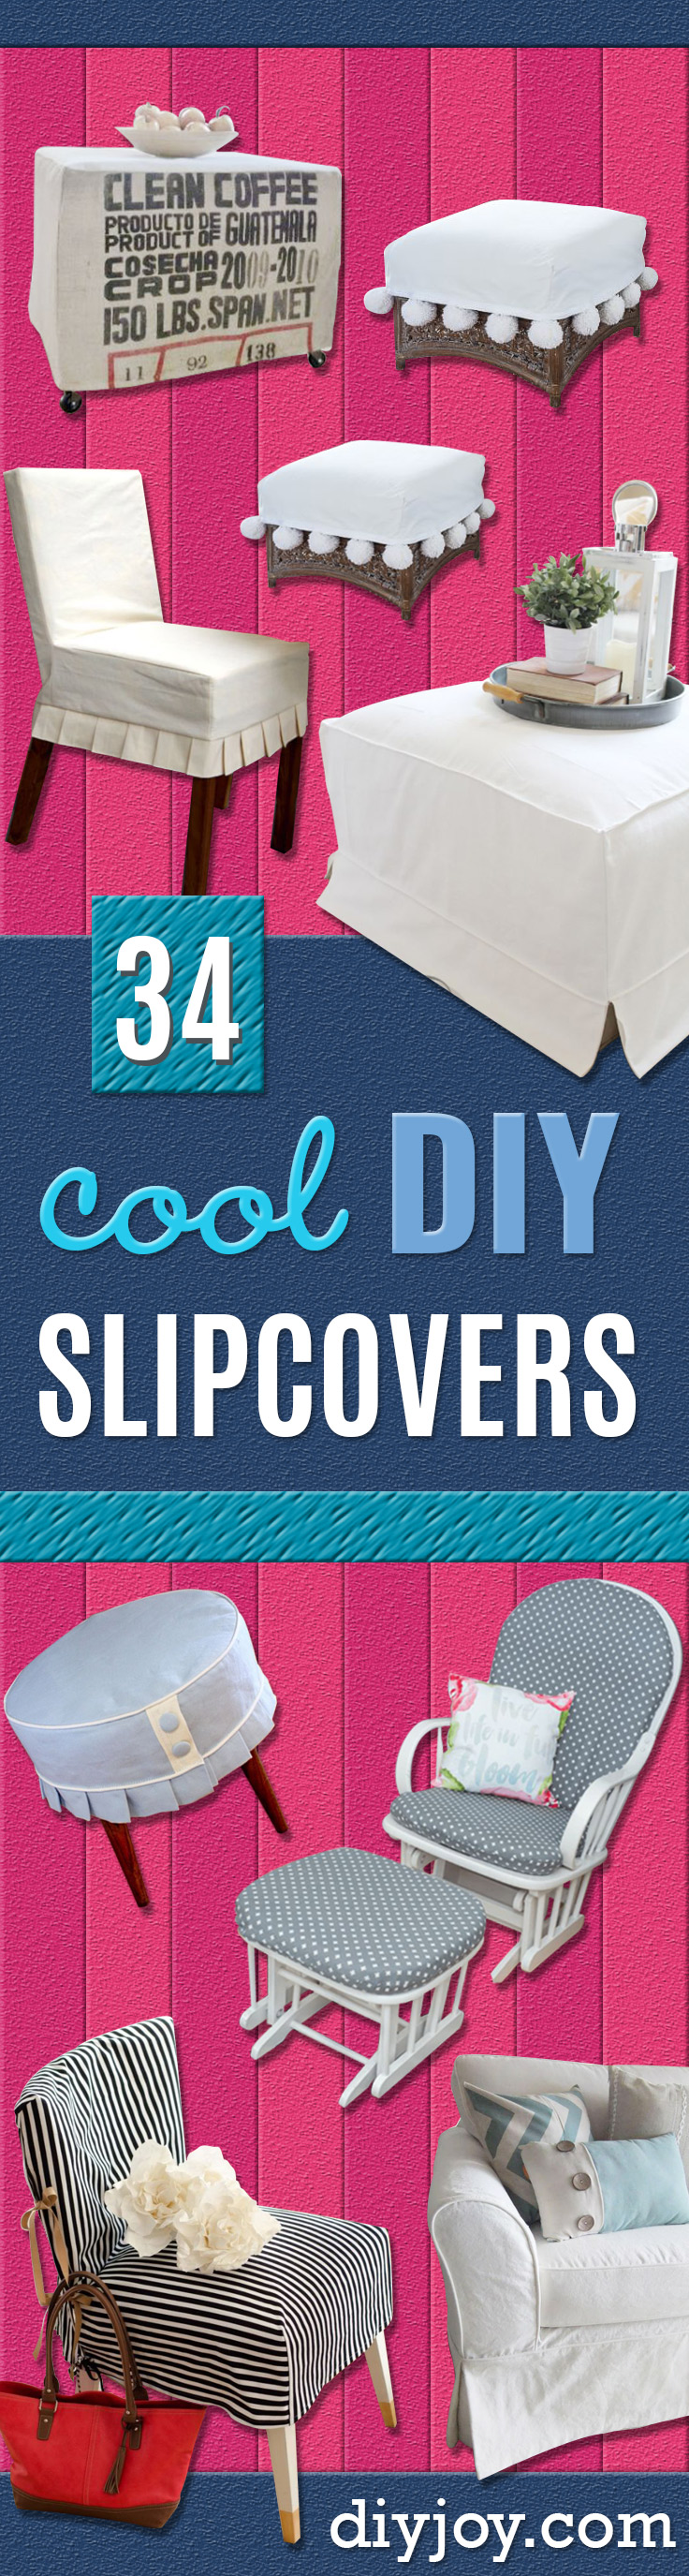 DIY Slipcovers - Do It Yourself Slip Covers For Furniture - No Sew Ideas, Easy Fabrics Four Couch and Sofa Cover - Chair Projects and Ideas, How To Make a Slip cover with step by step tutorial and instructions - Cool DIY Home and Living Room Decor